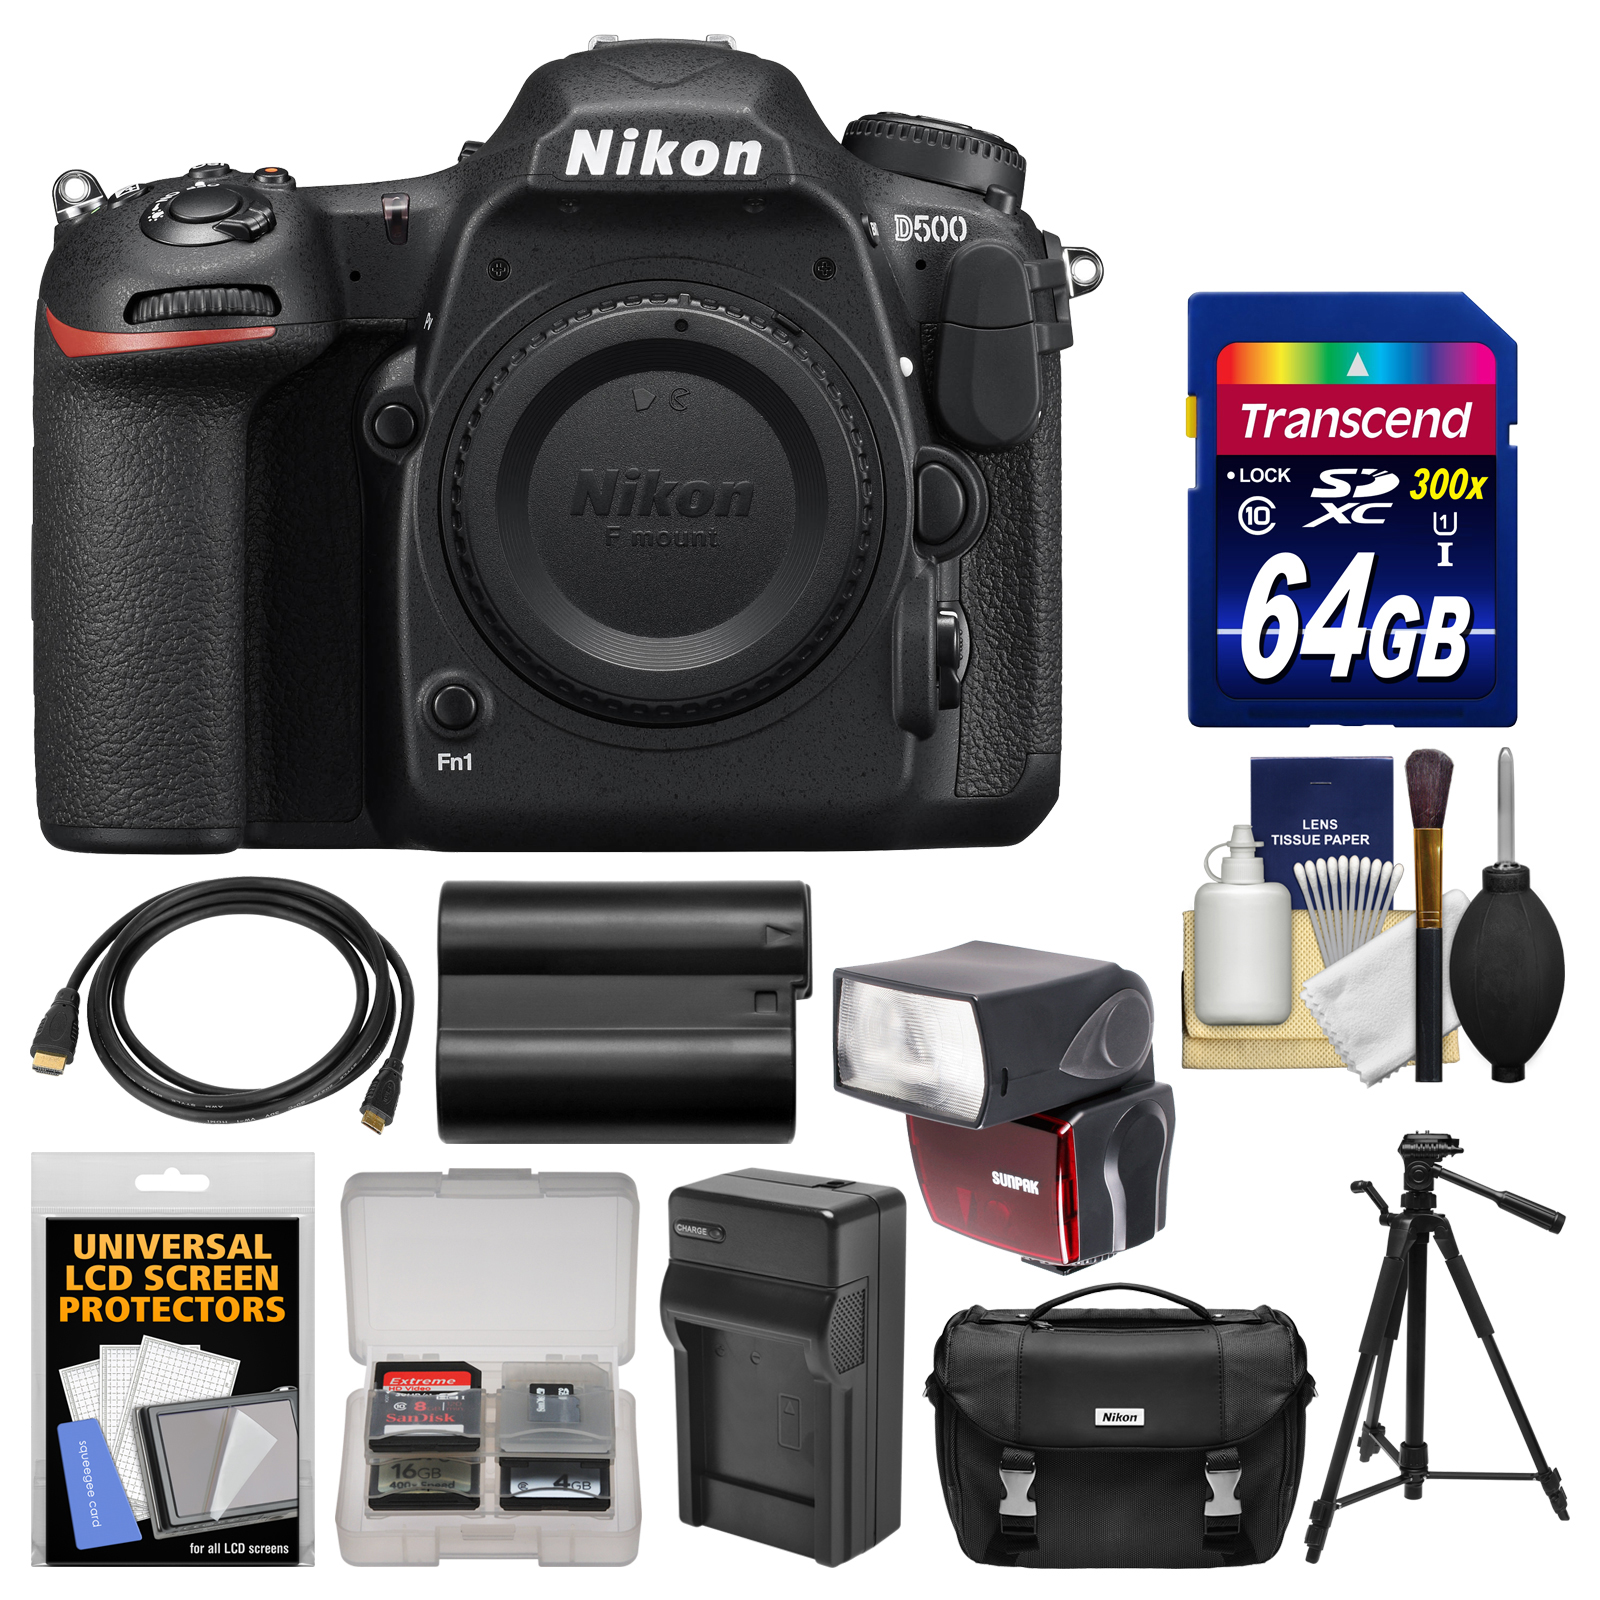 Nikon D500 Wi-Fi 4K Digital SLR Camera Body with 64GB Card + Case + Flash + Battery & Charger + Tripod + Kit